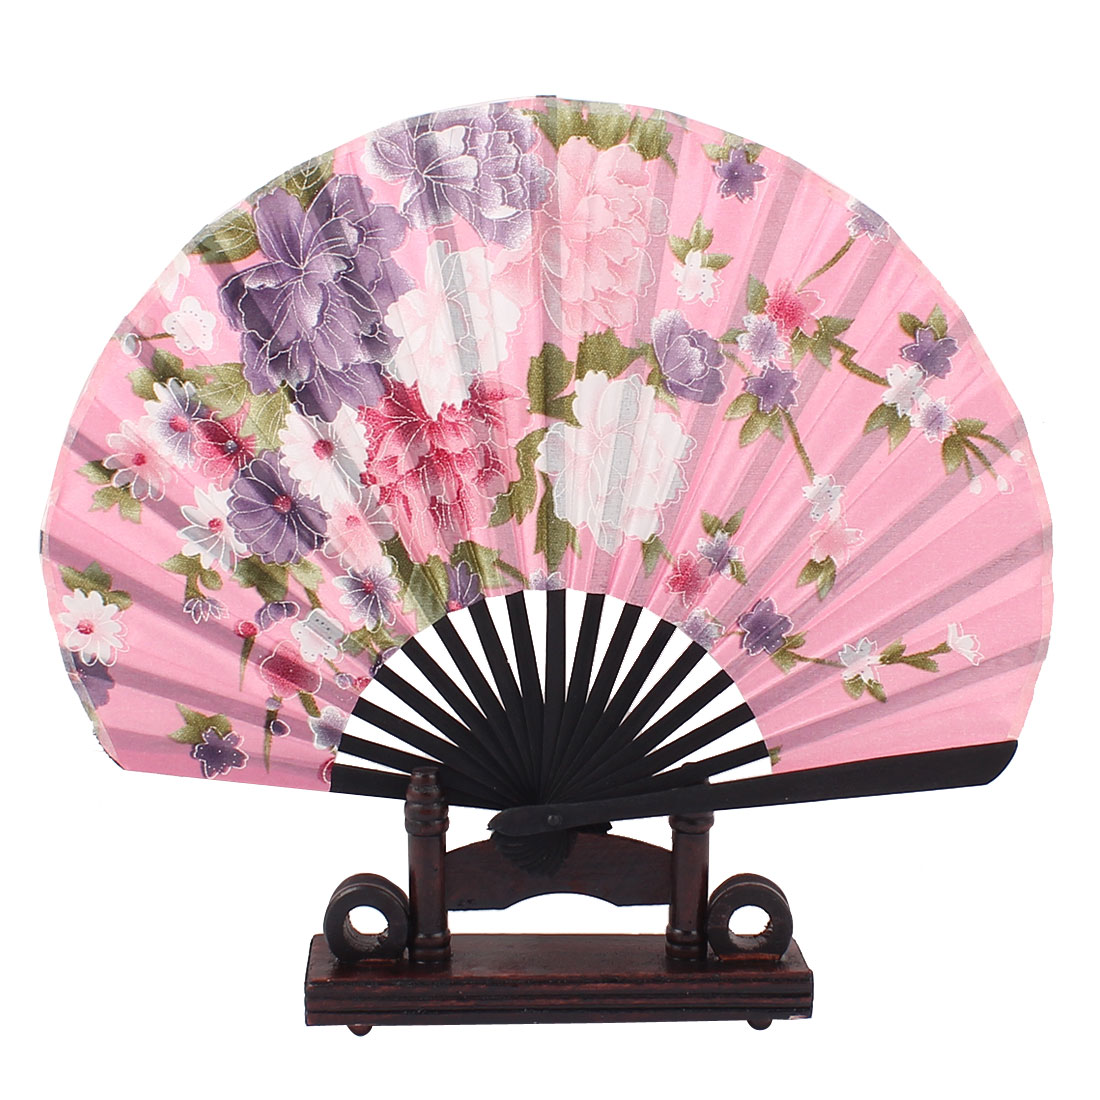 Chinese Style Bamboo Ribs Green Leaves Purple Floral Pattern Pink Fabric Cloth Folding Hand Fan w Display Holder